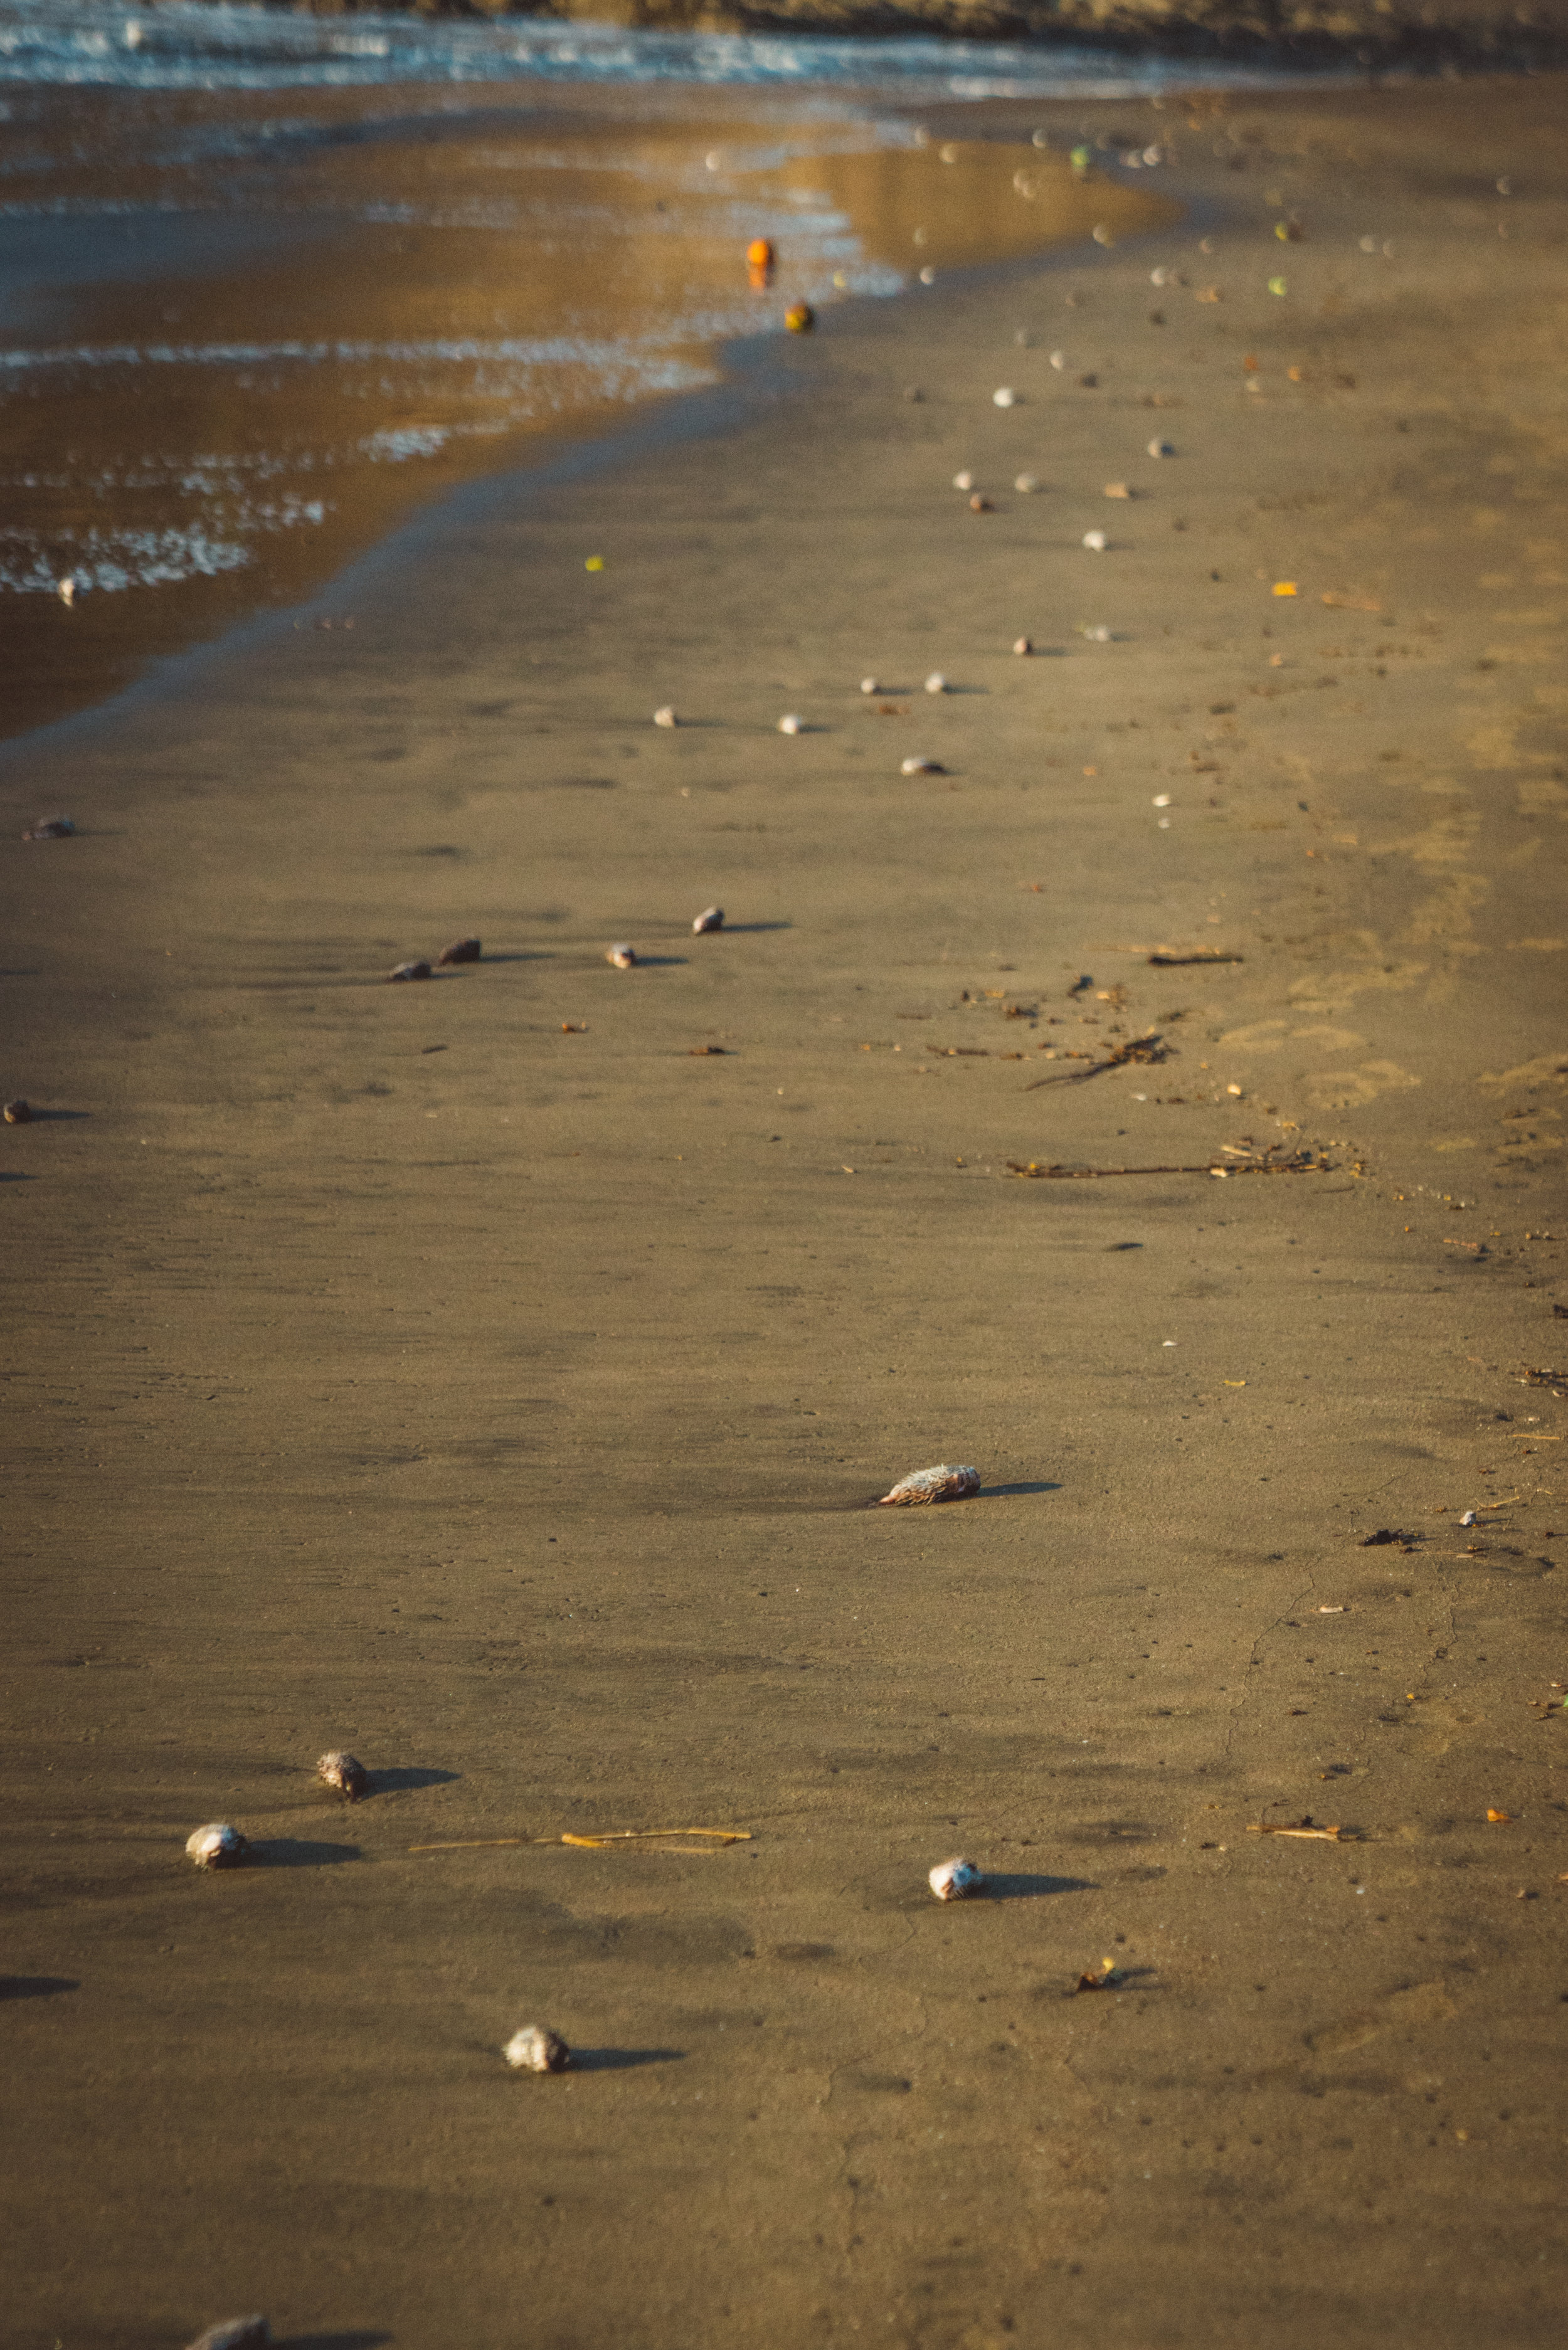 Coco beach was littered with washed up critters, many of which were puffer fish.